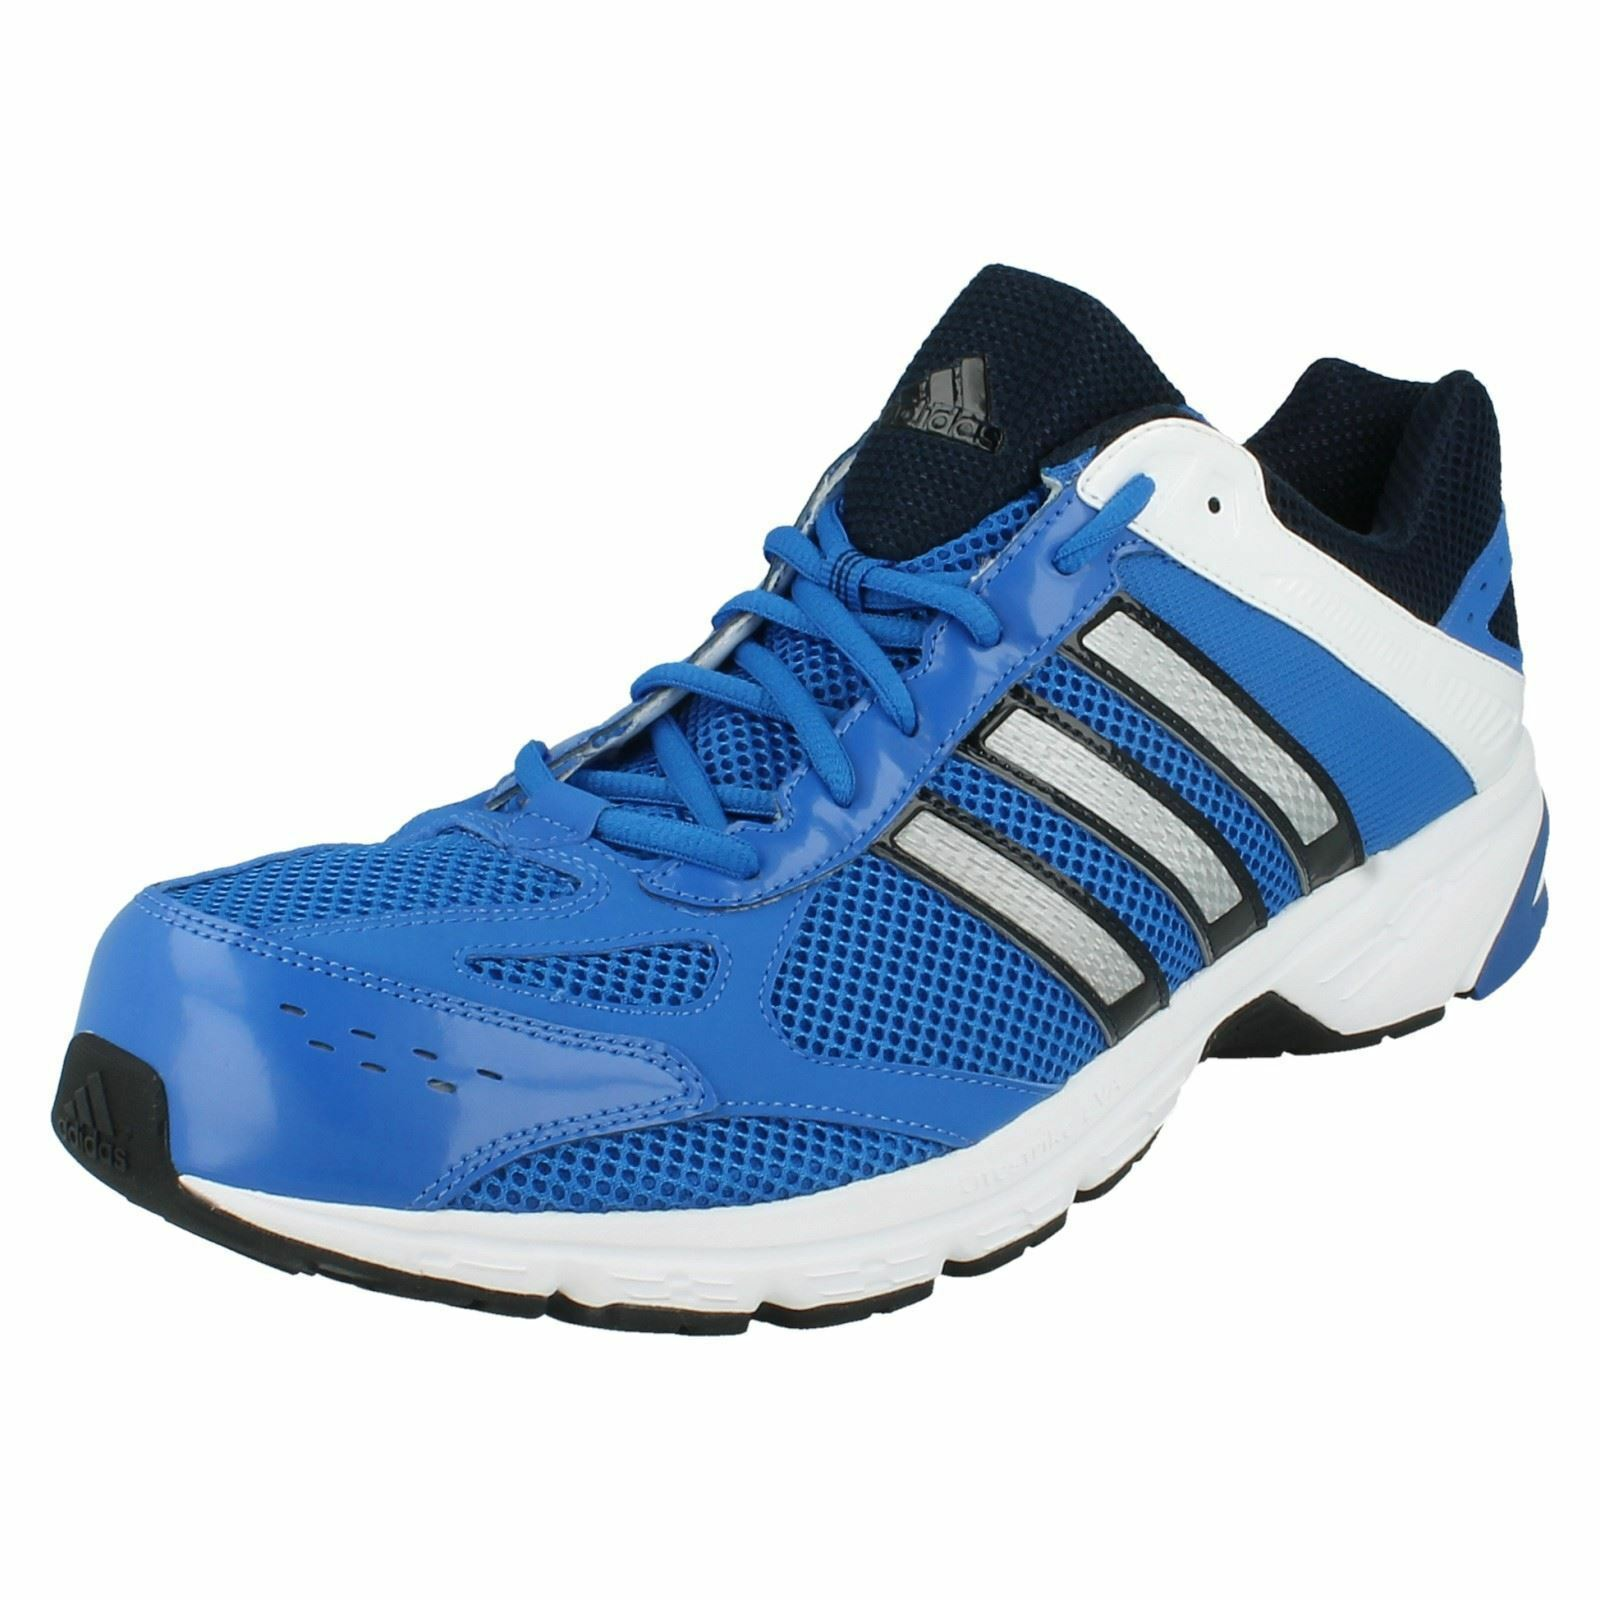 Homme Duramo 4 M  Bleu  running trainers by Adidas 49.99